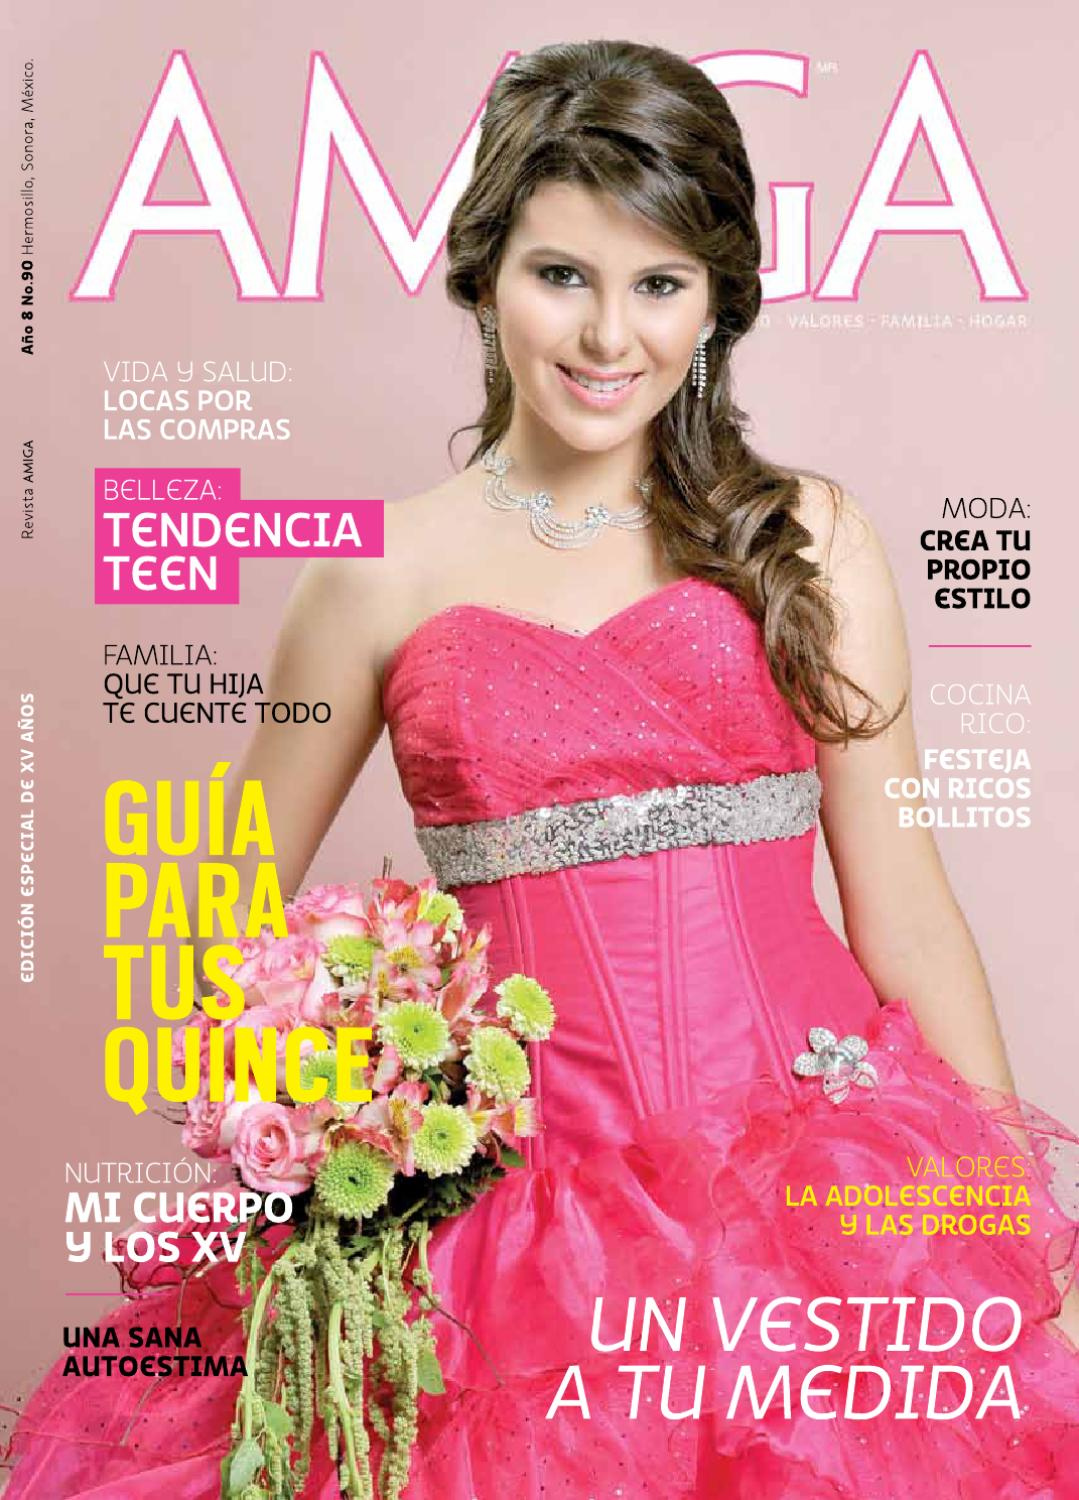 Revista Amiga - Edicion 90 by Revista Amiga y Revista BS - issuu